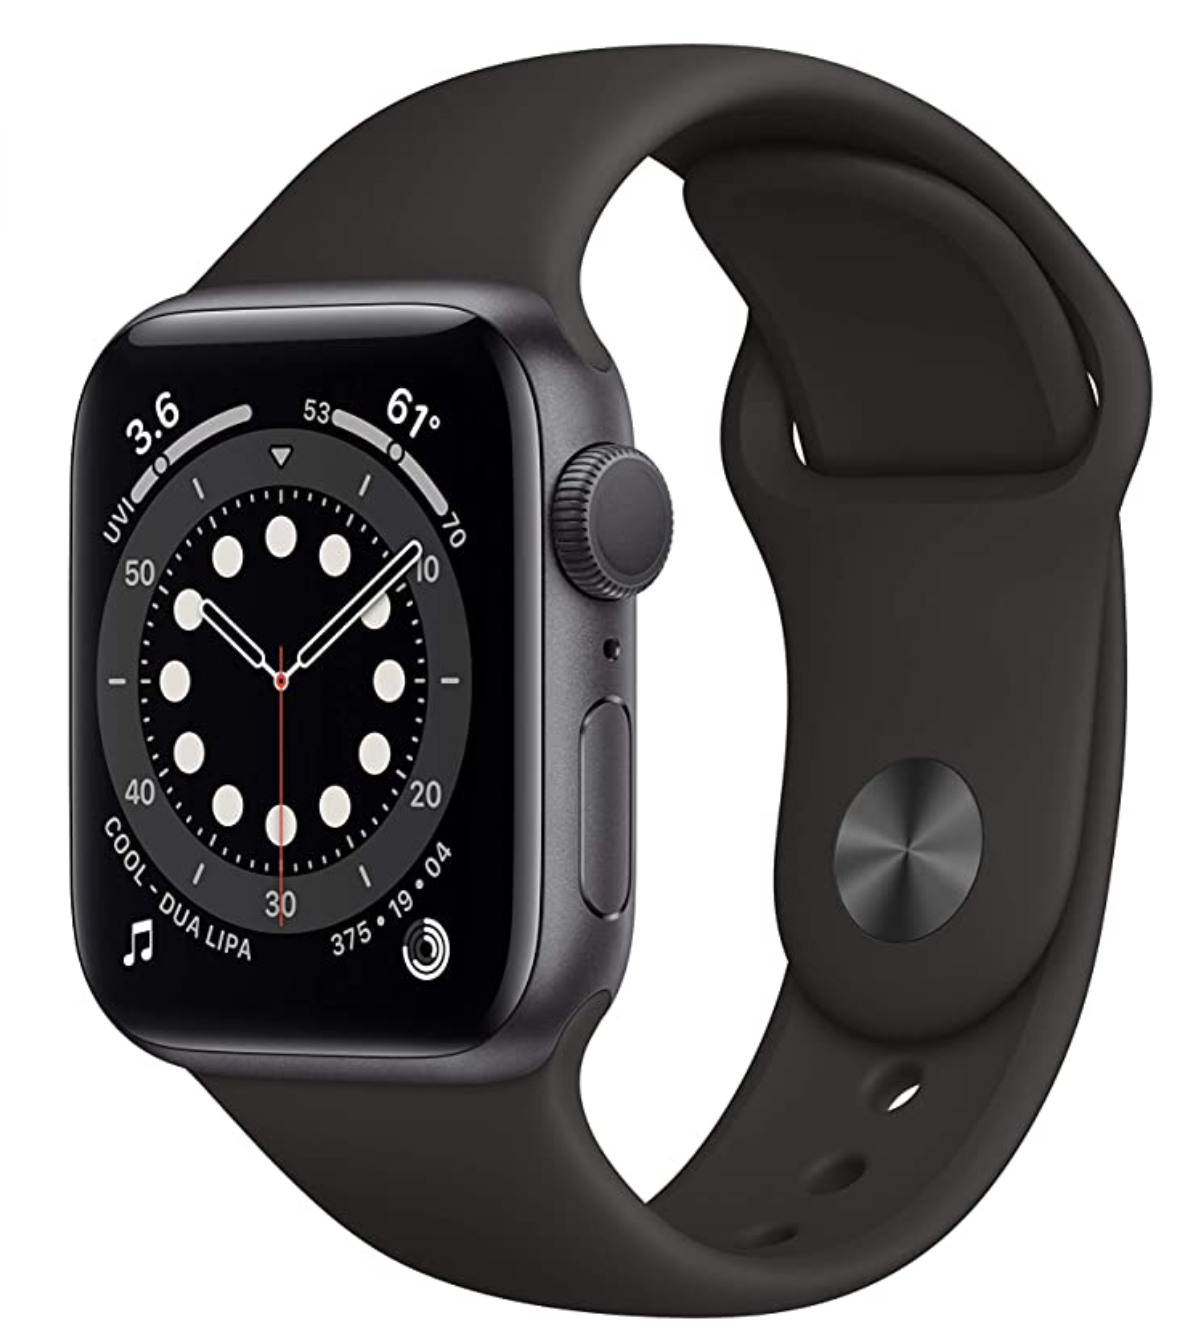 Apple Watch with a black band and a clock on the face